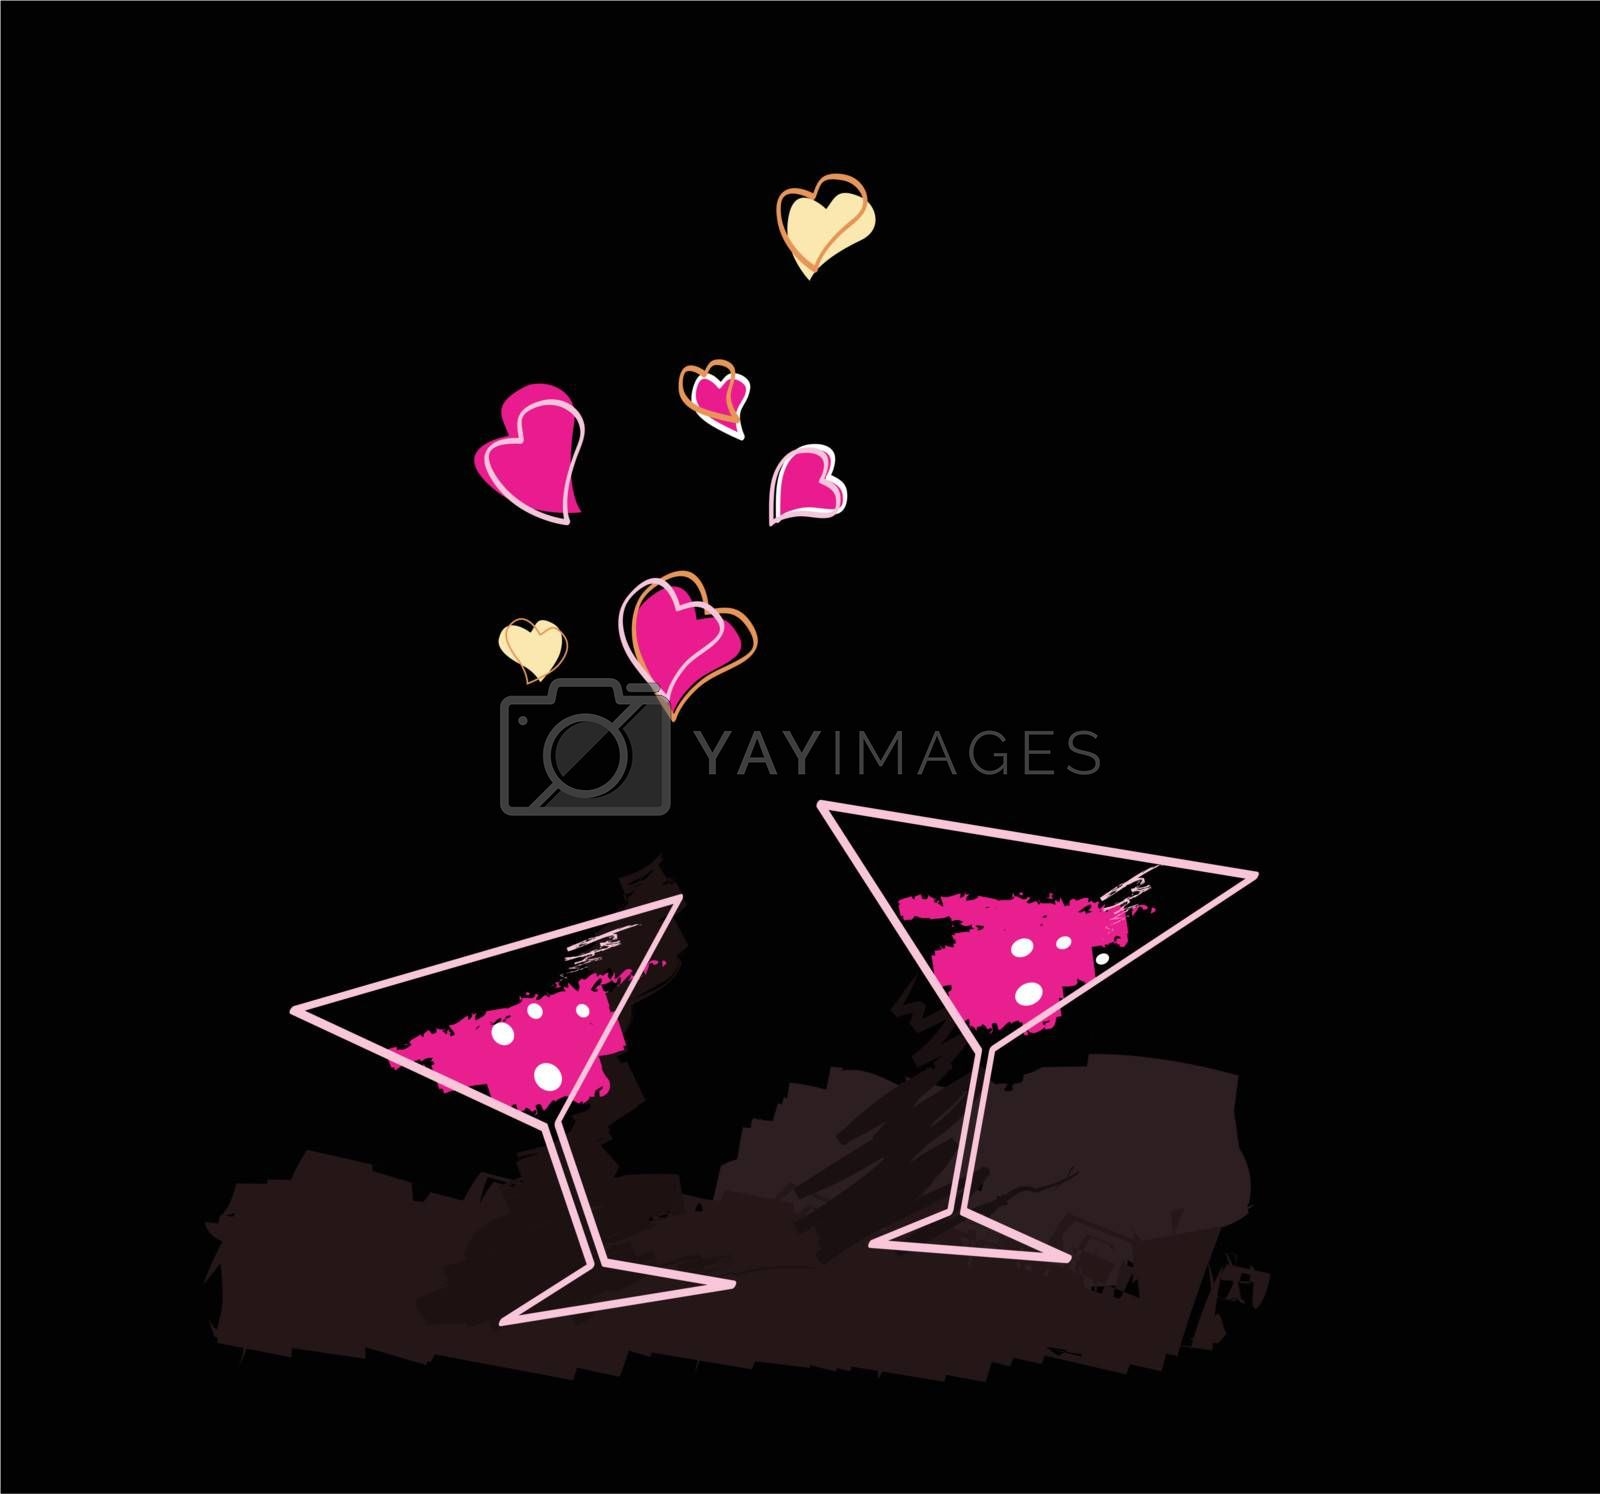 Romantic evening. Art Illustration of Wine glasses with hearts.